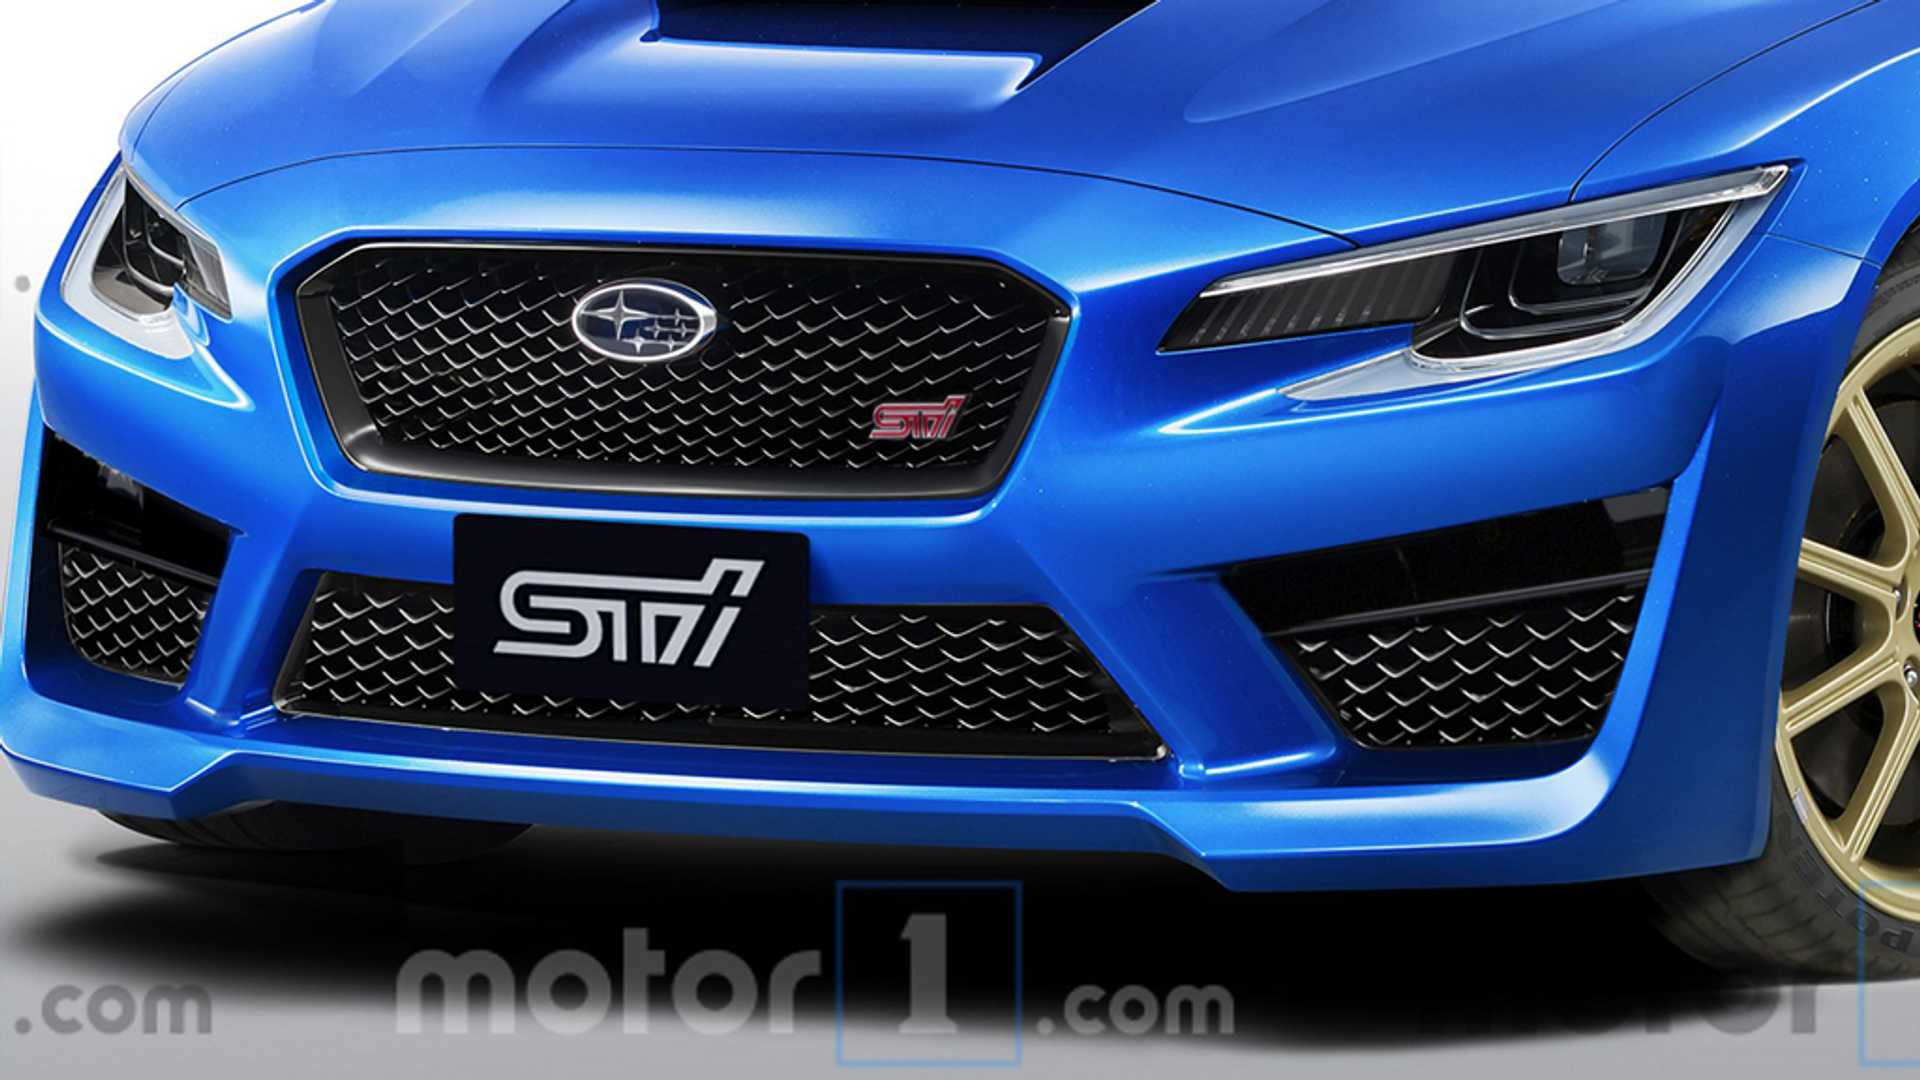 53 All New Subaru Wrx Sti 2020 Engine Prices